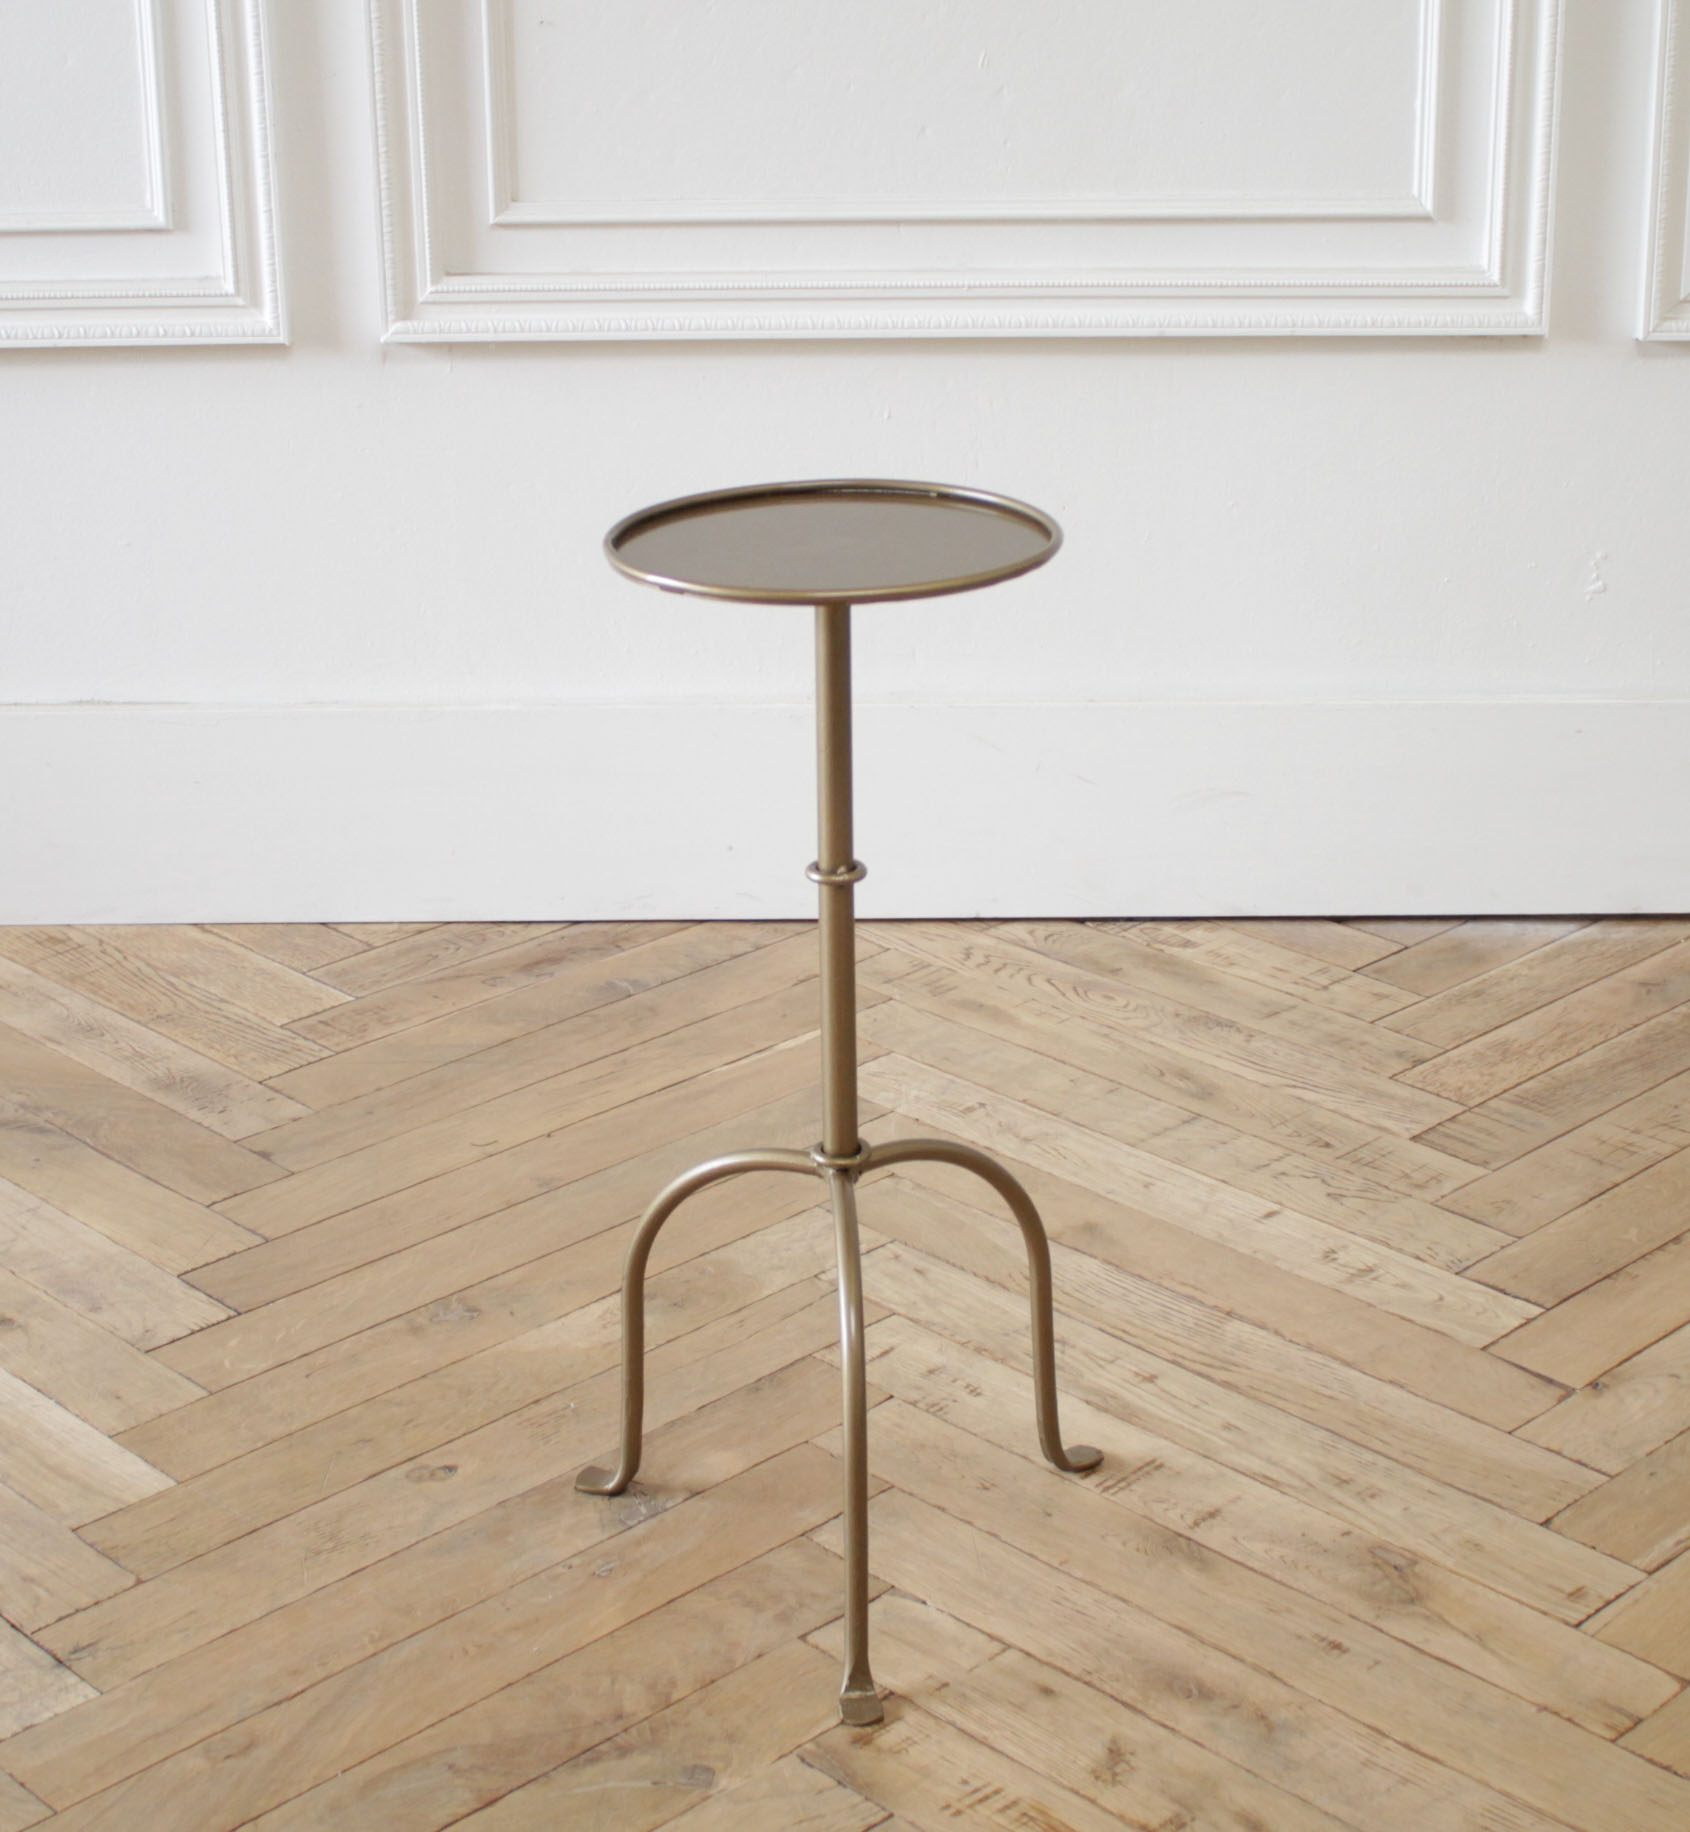 Cannes French Inspired Small Iron Drink Table in Iron Finish or Brass Finish